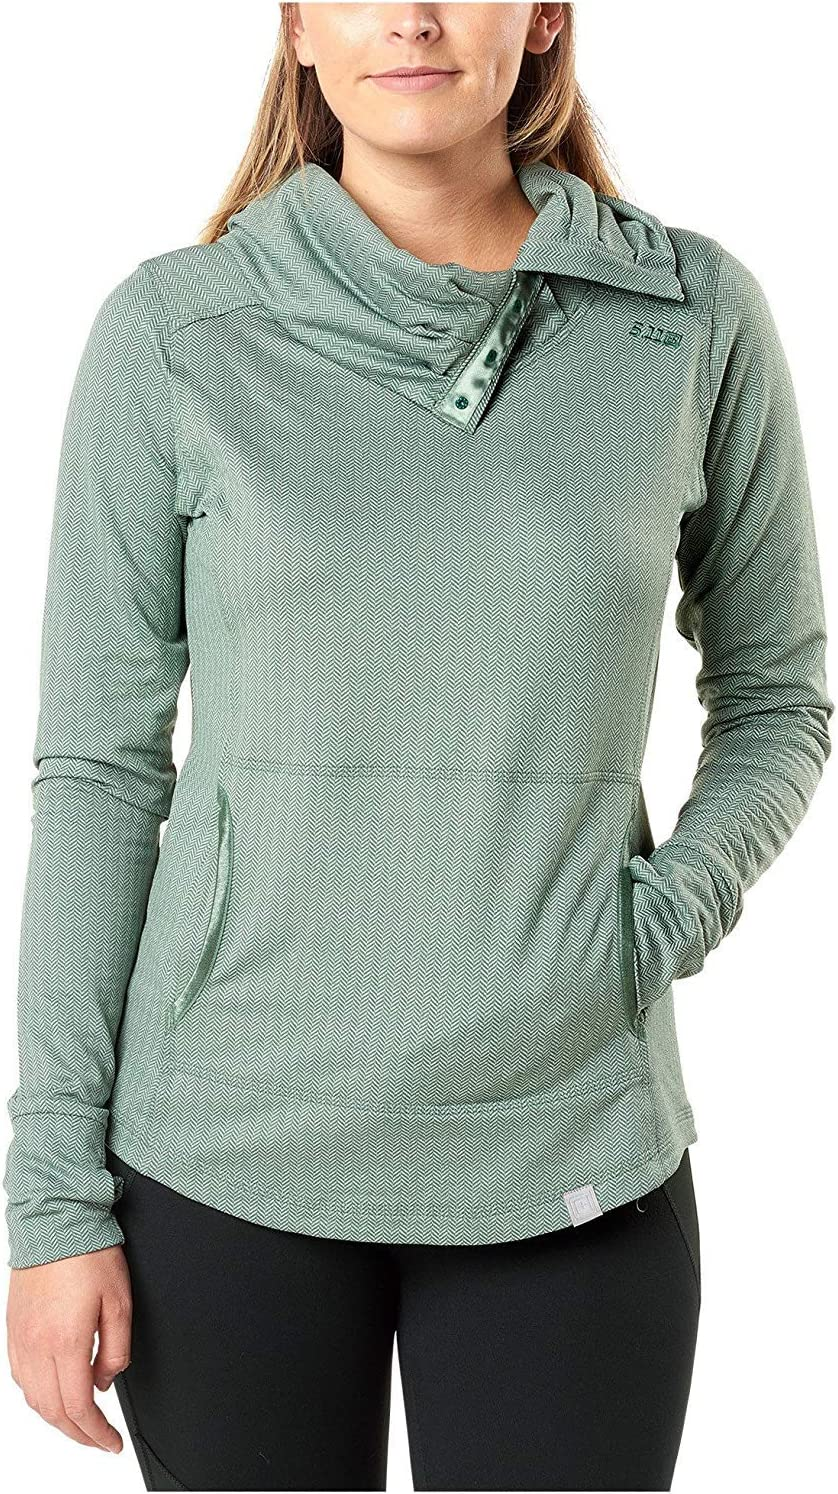 5.11 Tactical Women's Aphrodite Cowl Neck Pullover, Polyester/Spandex Blend Fabric, Style 62026